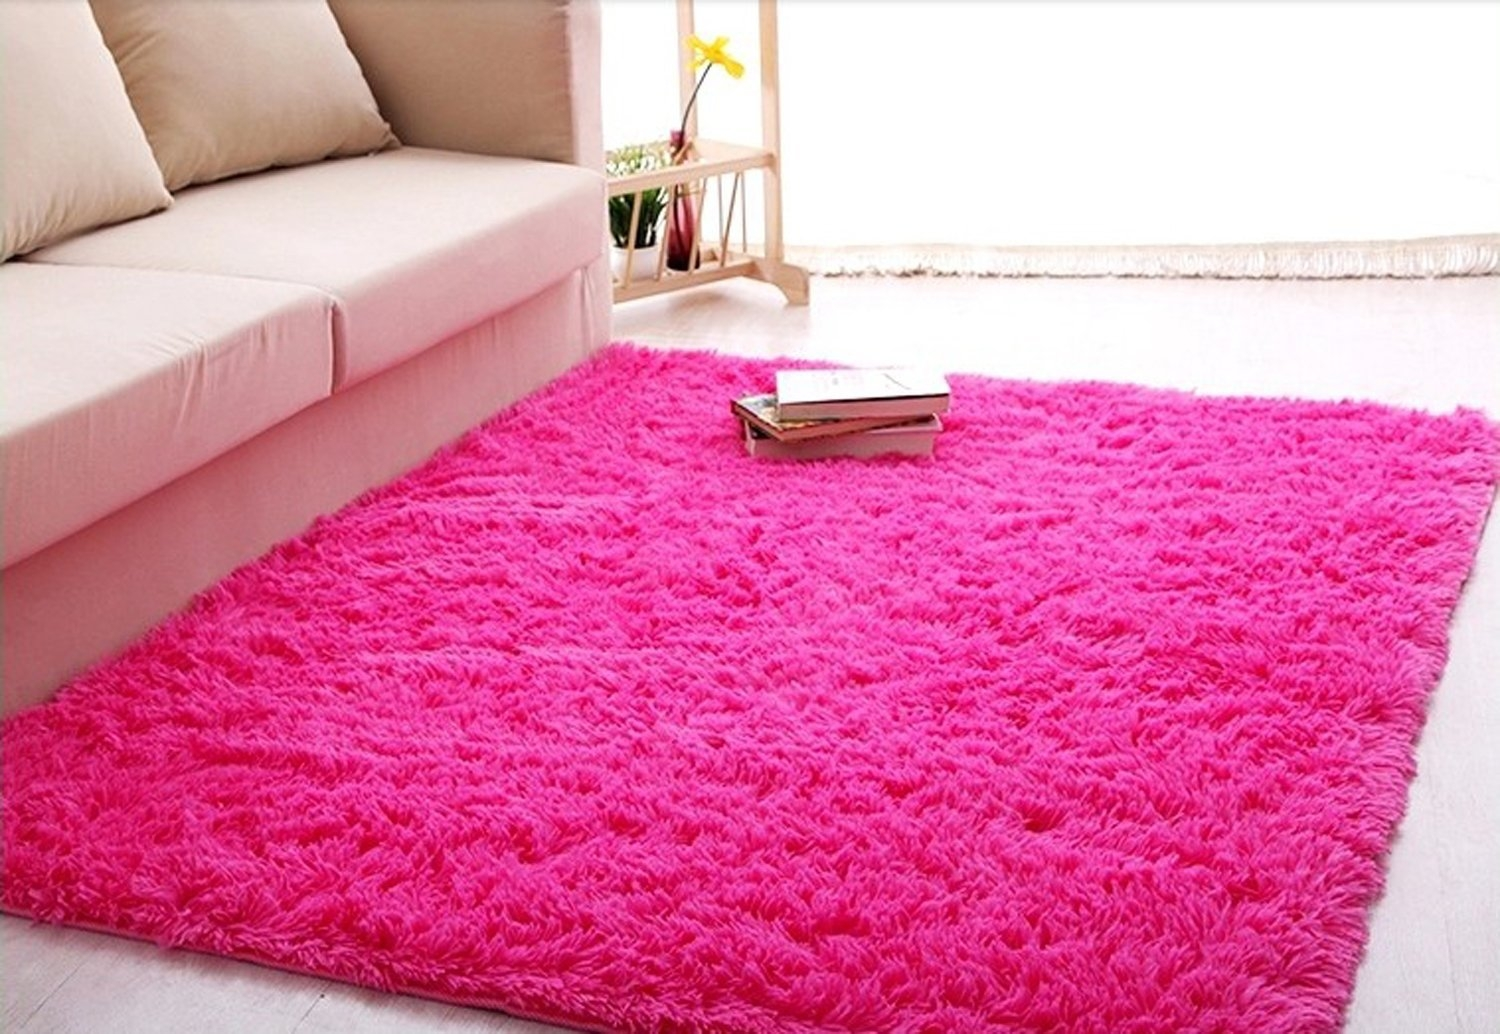 Cheap Pink Rug Roselawnlutheran Pertaining To Pink Alphabet Rugs (View 6 of 15)